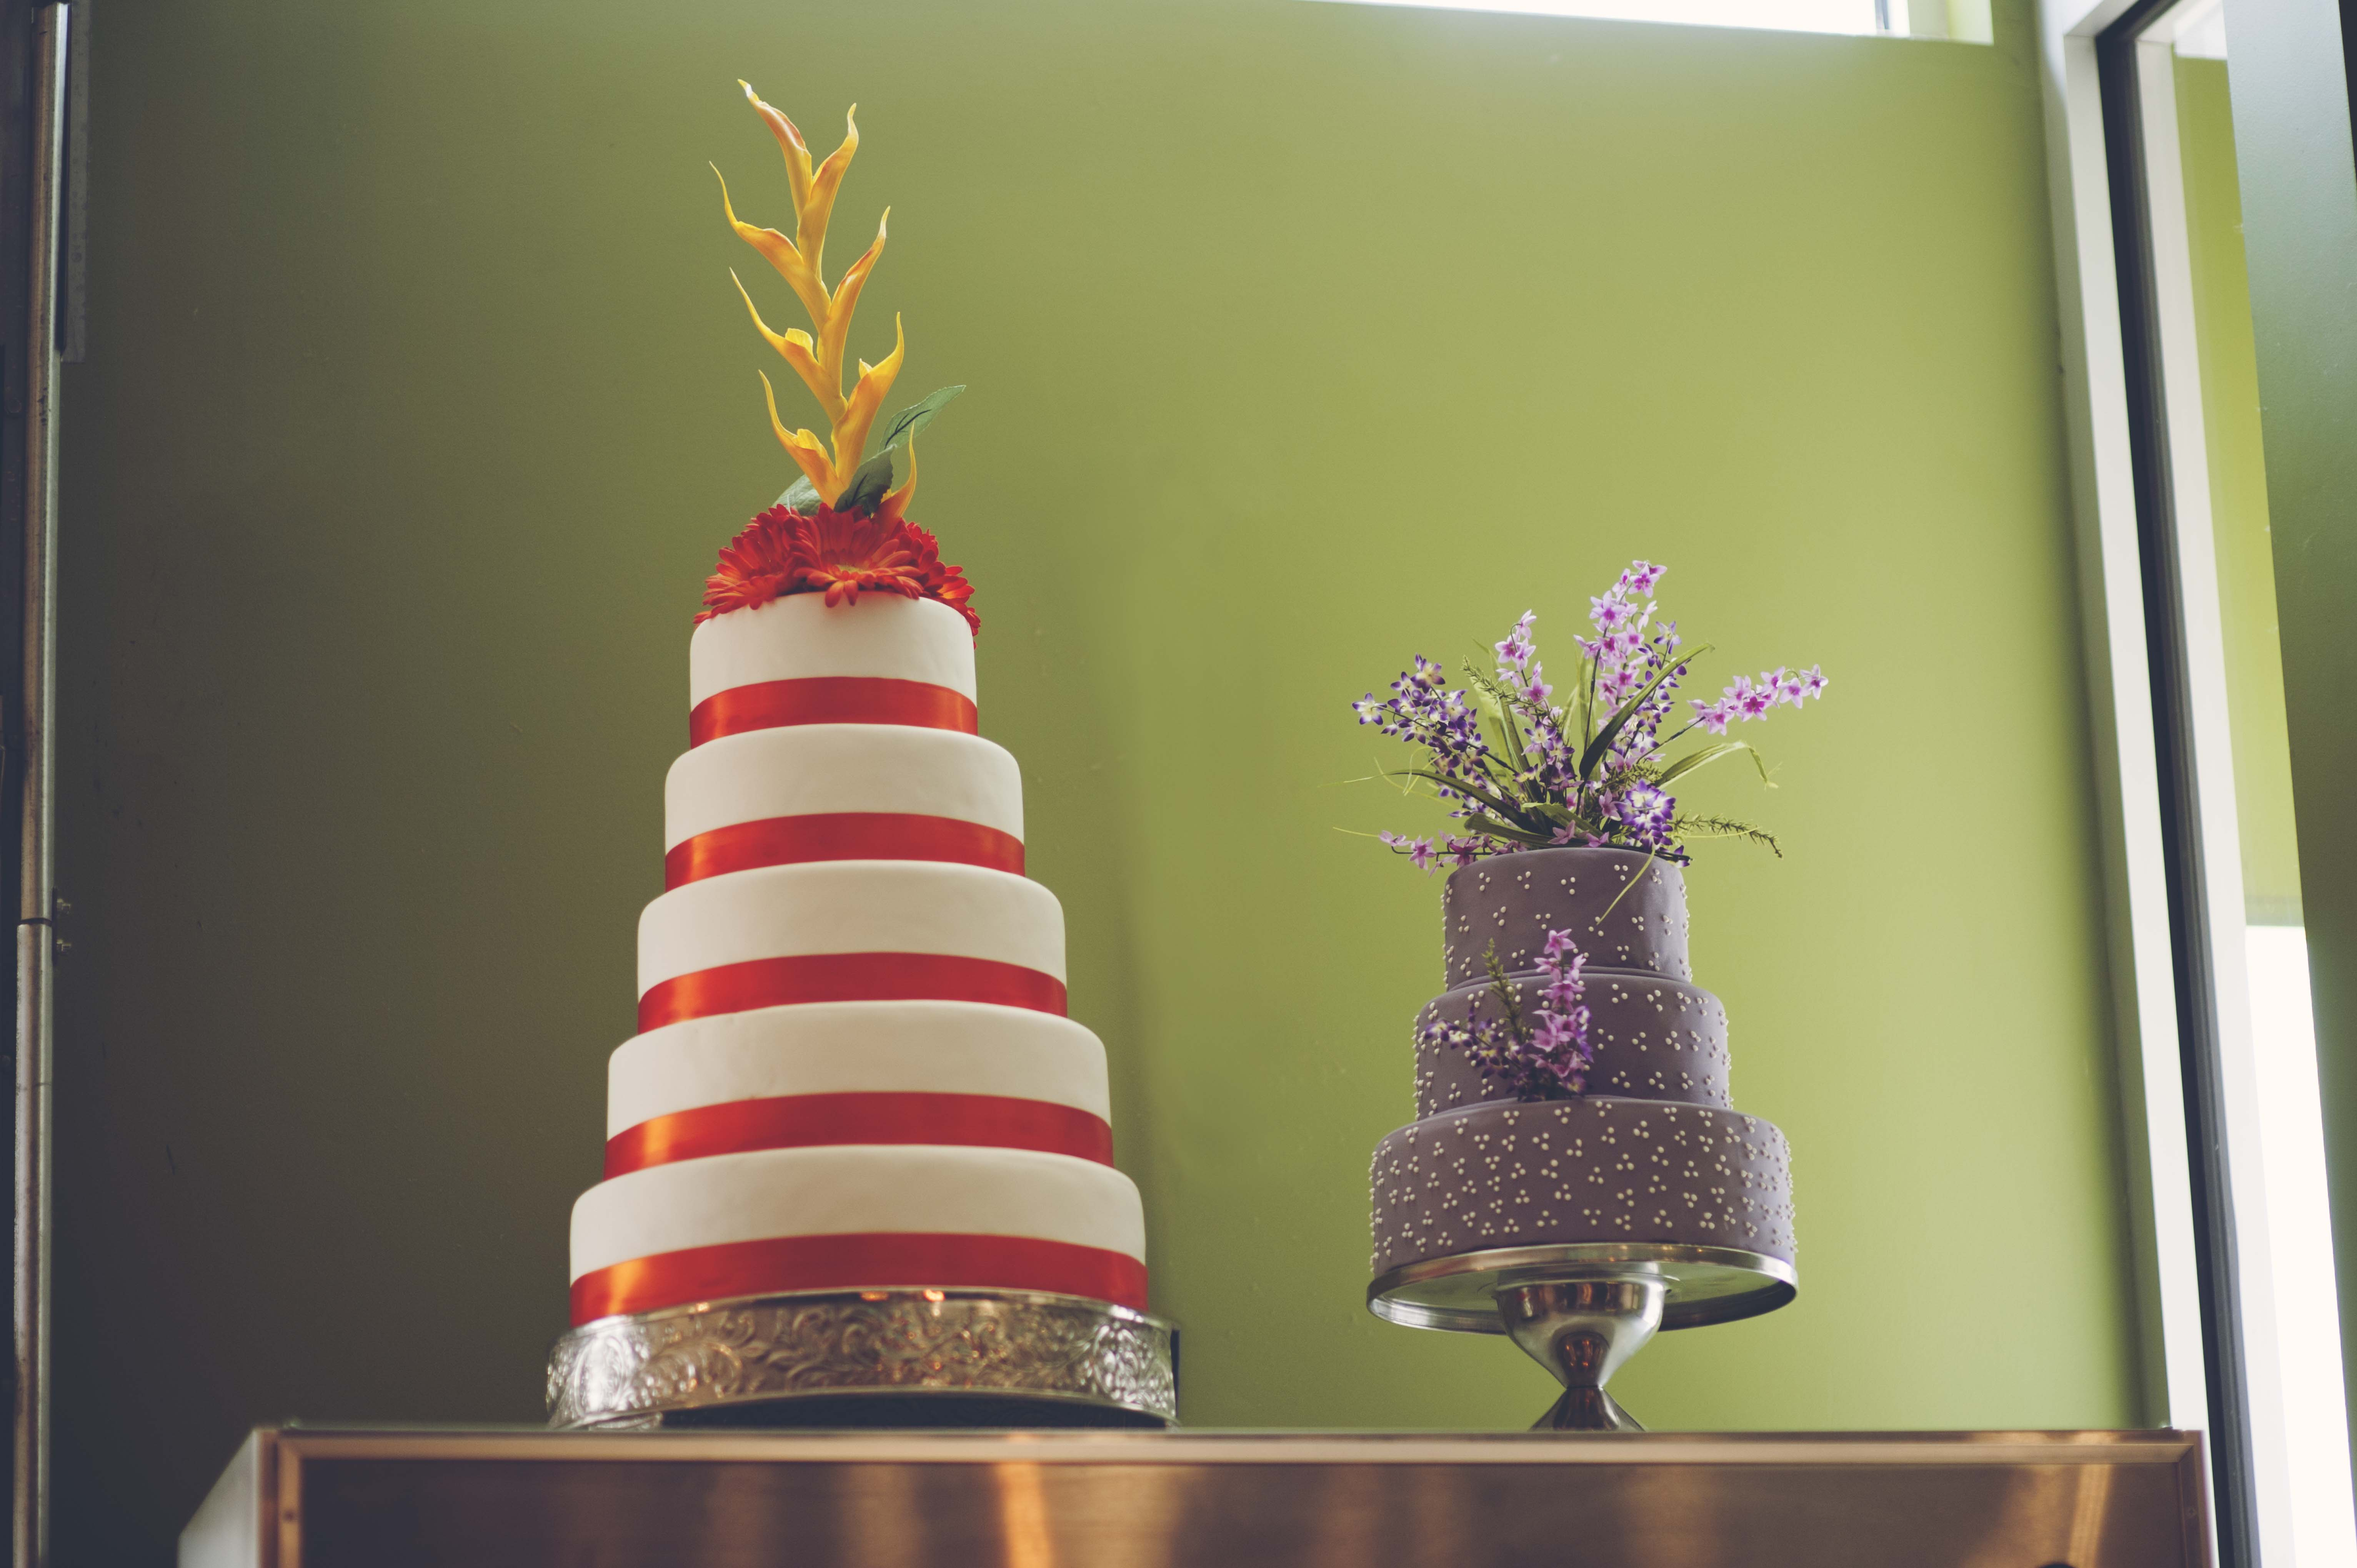 Cakes for special occasions. Available to order at Sugarmill.